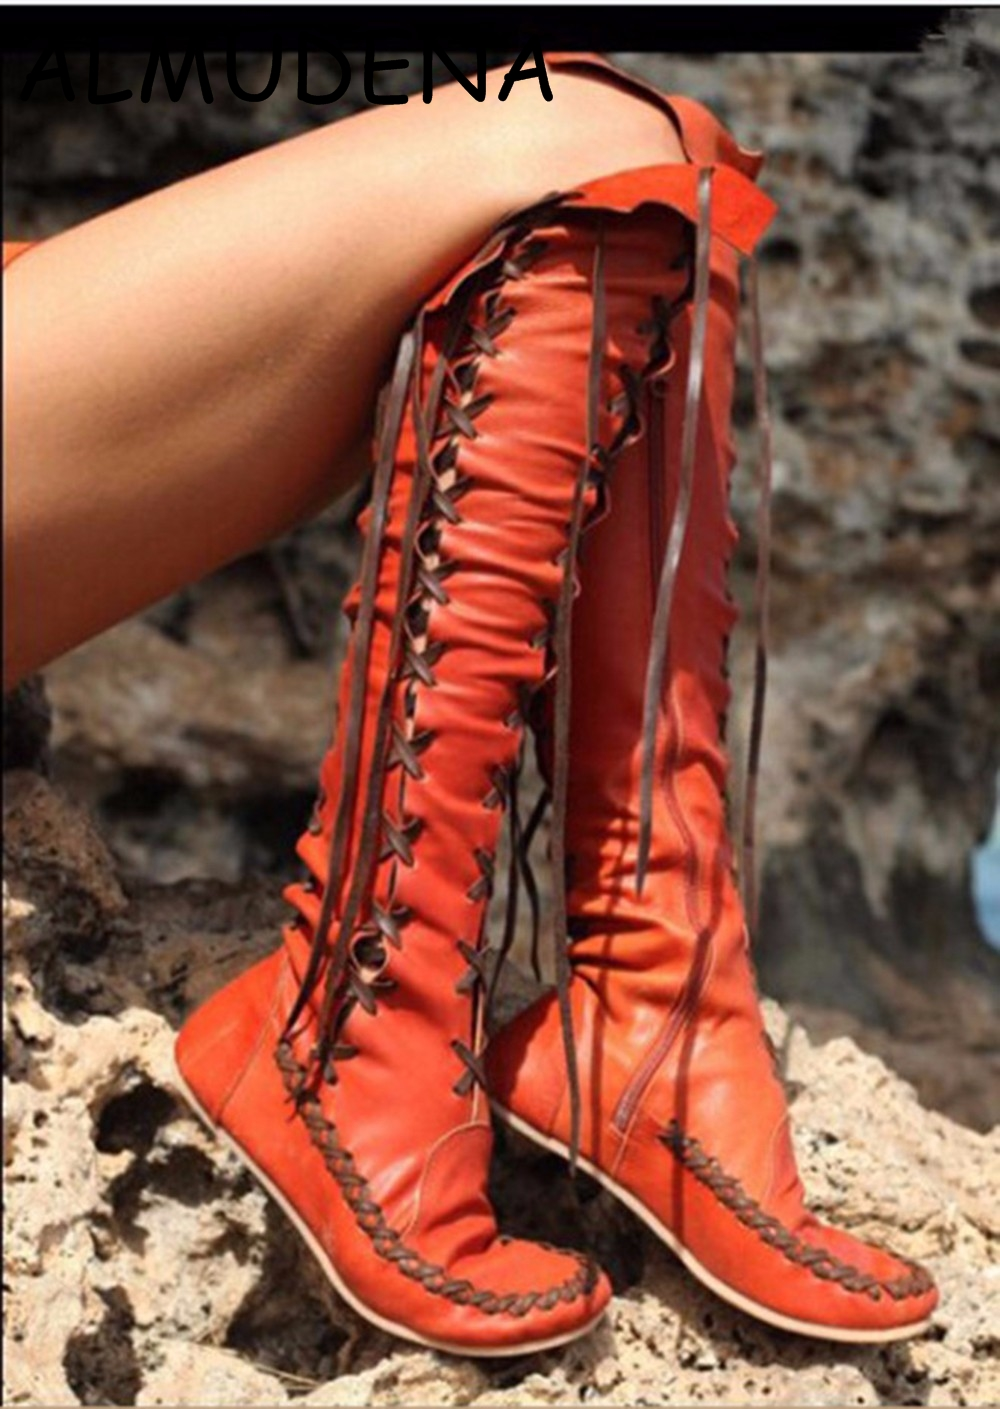 Solid Lace up Fringe Flat With Knee High Boots Red Orange Purple Confortable Casual Rome Style Shoes